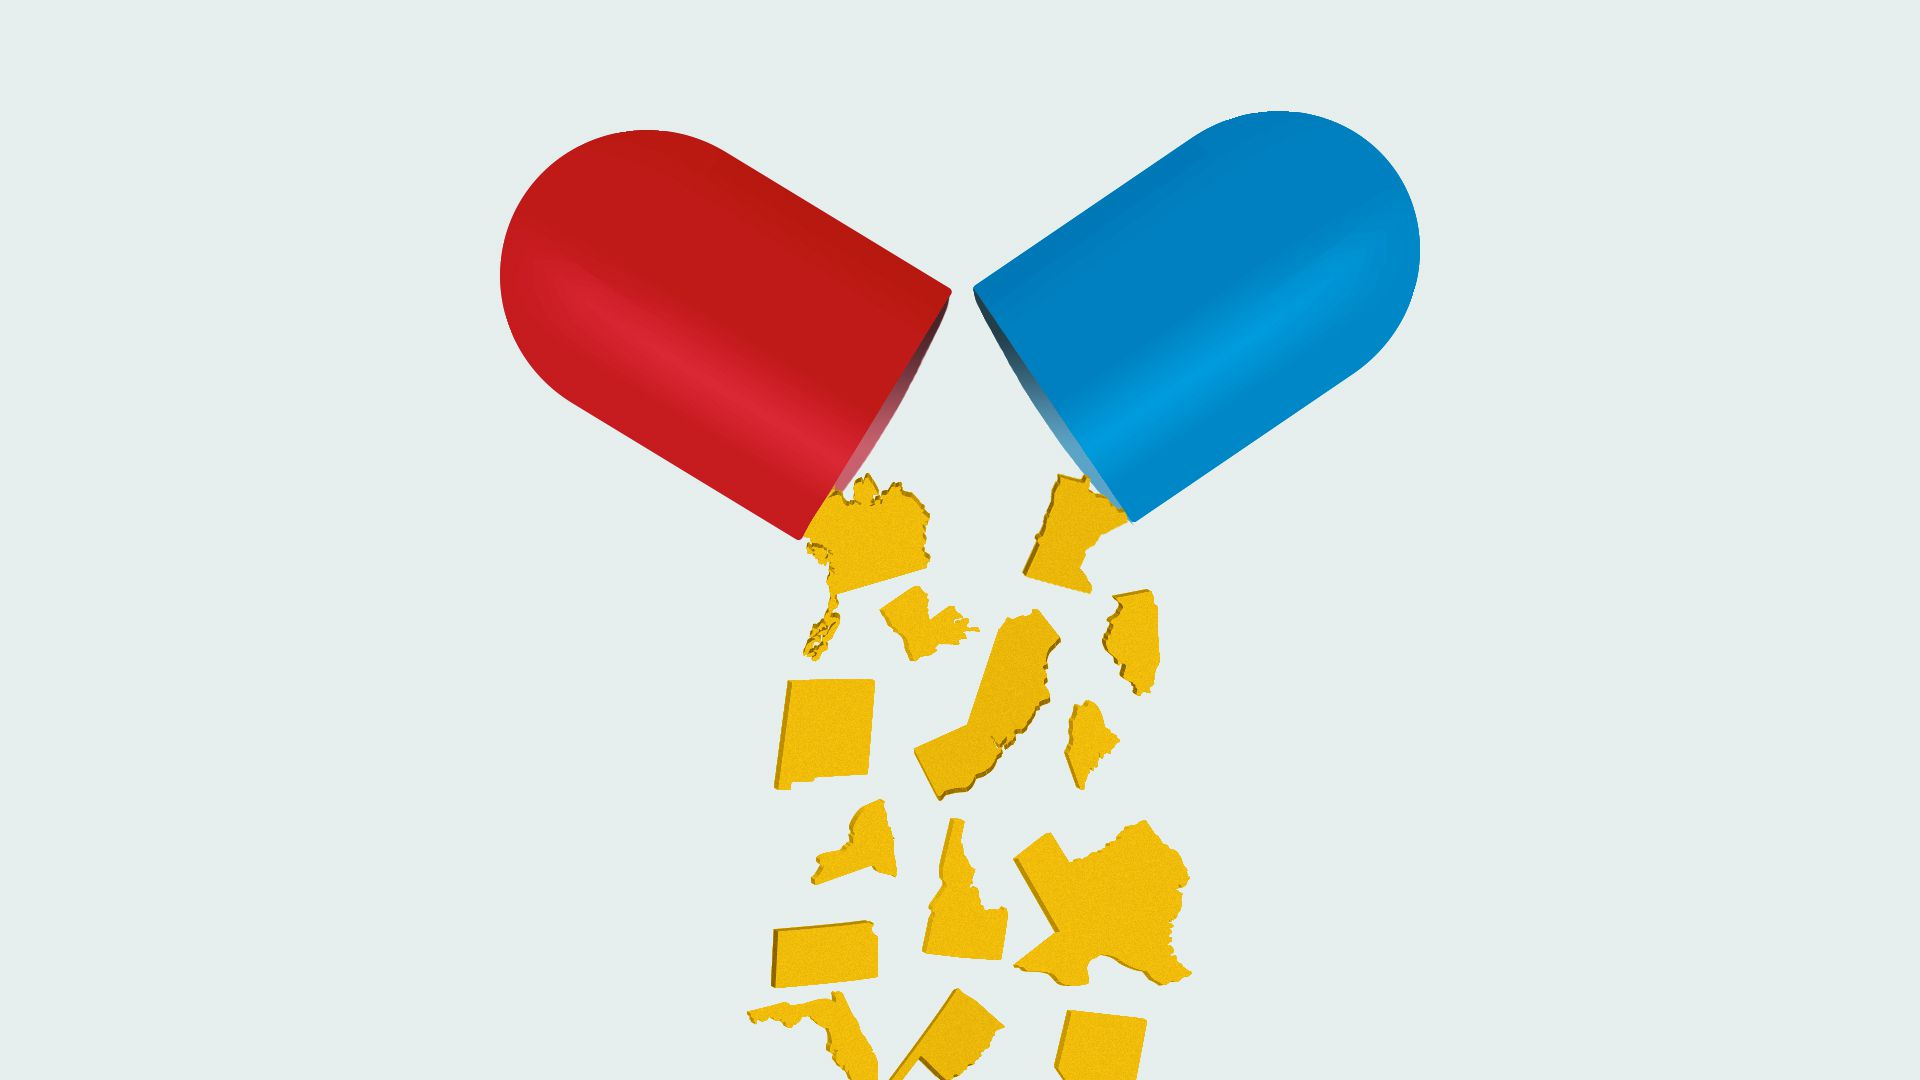 Illustration of a pills capsule opening with state-shaped pills falling out.